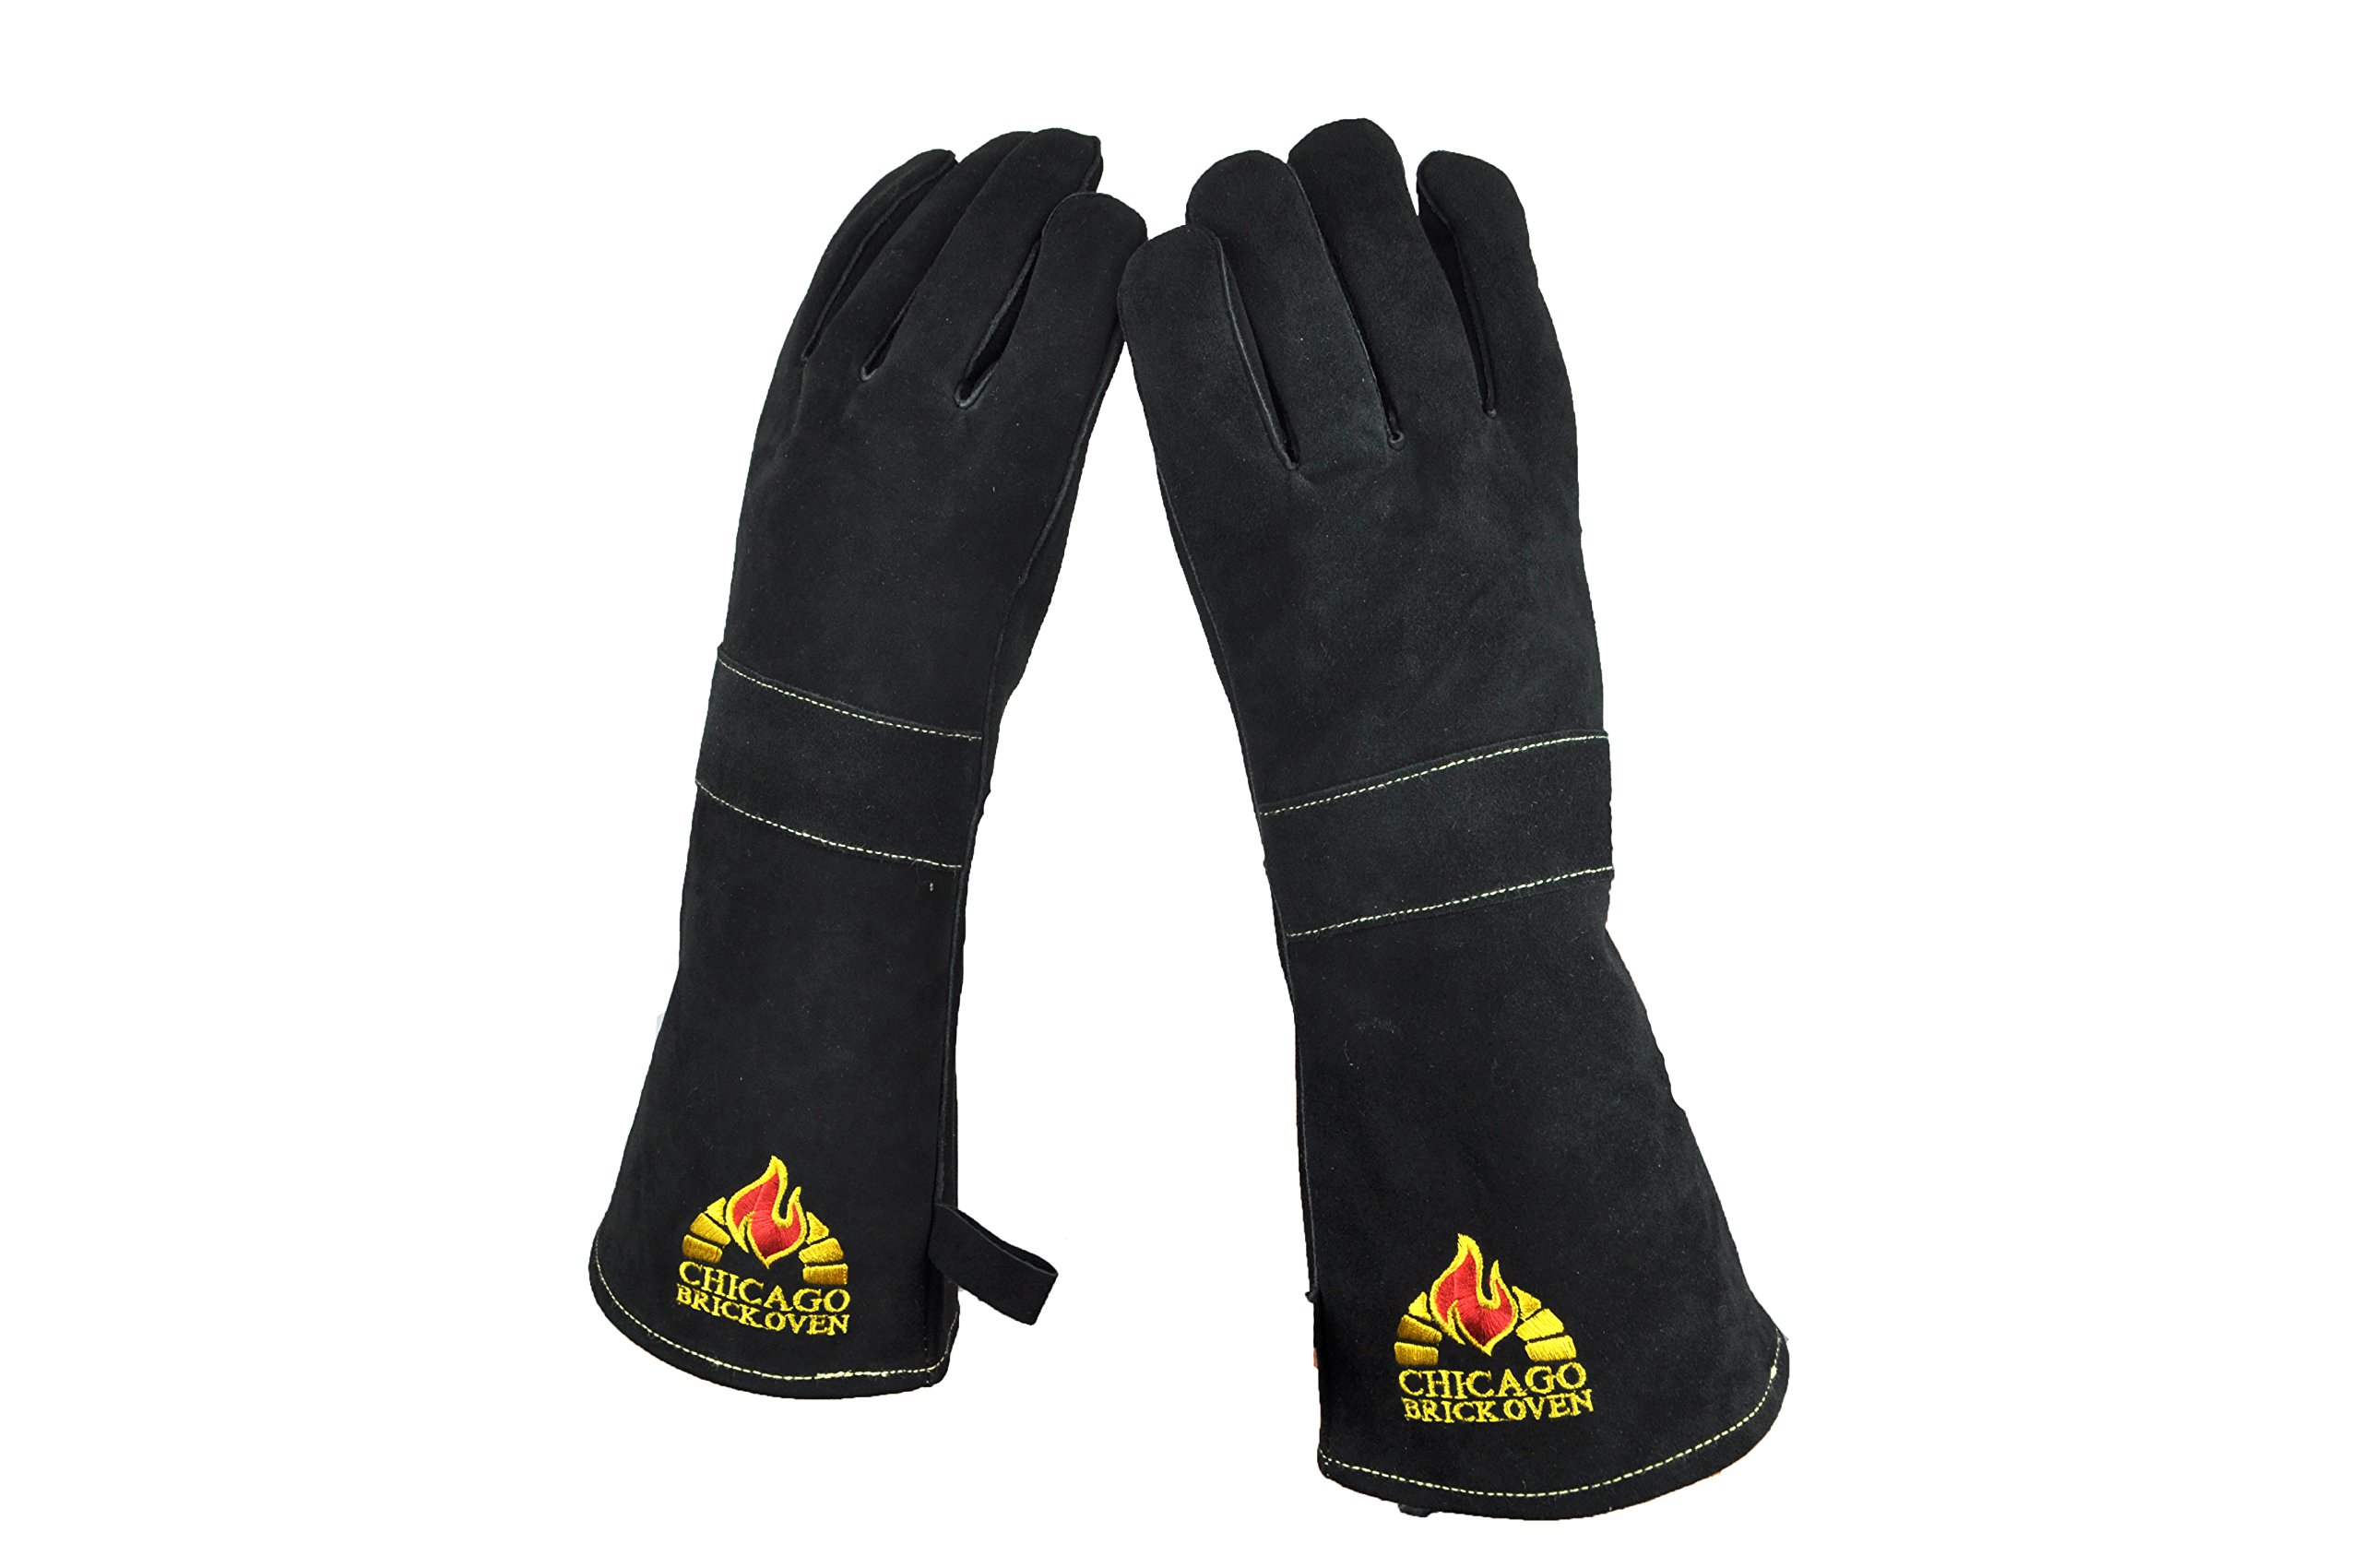 Versatile Welding BBQ Oven Gloves with Premium Cowhide Leather and Kevlar Stitching - Heat Fire Resistant up to 932° F, 16'' Extra Long Sleeves for Safety Protection